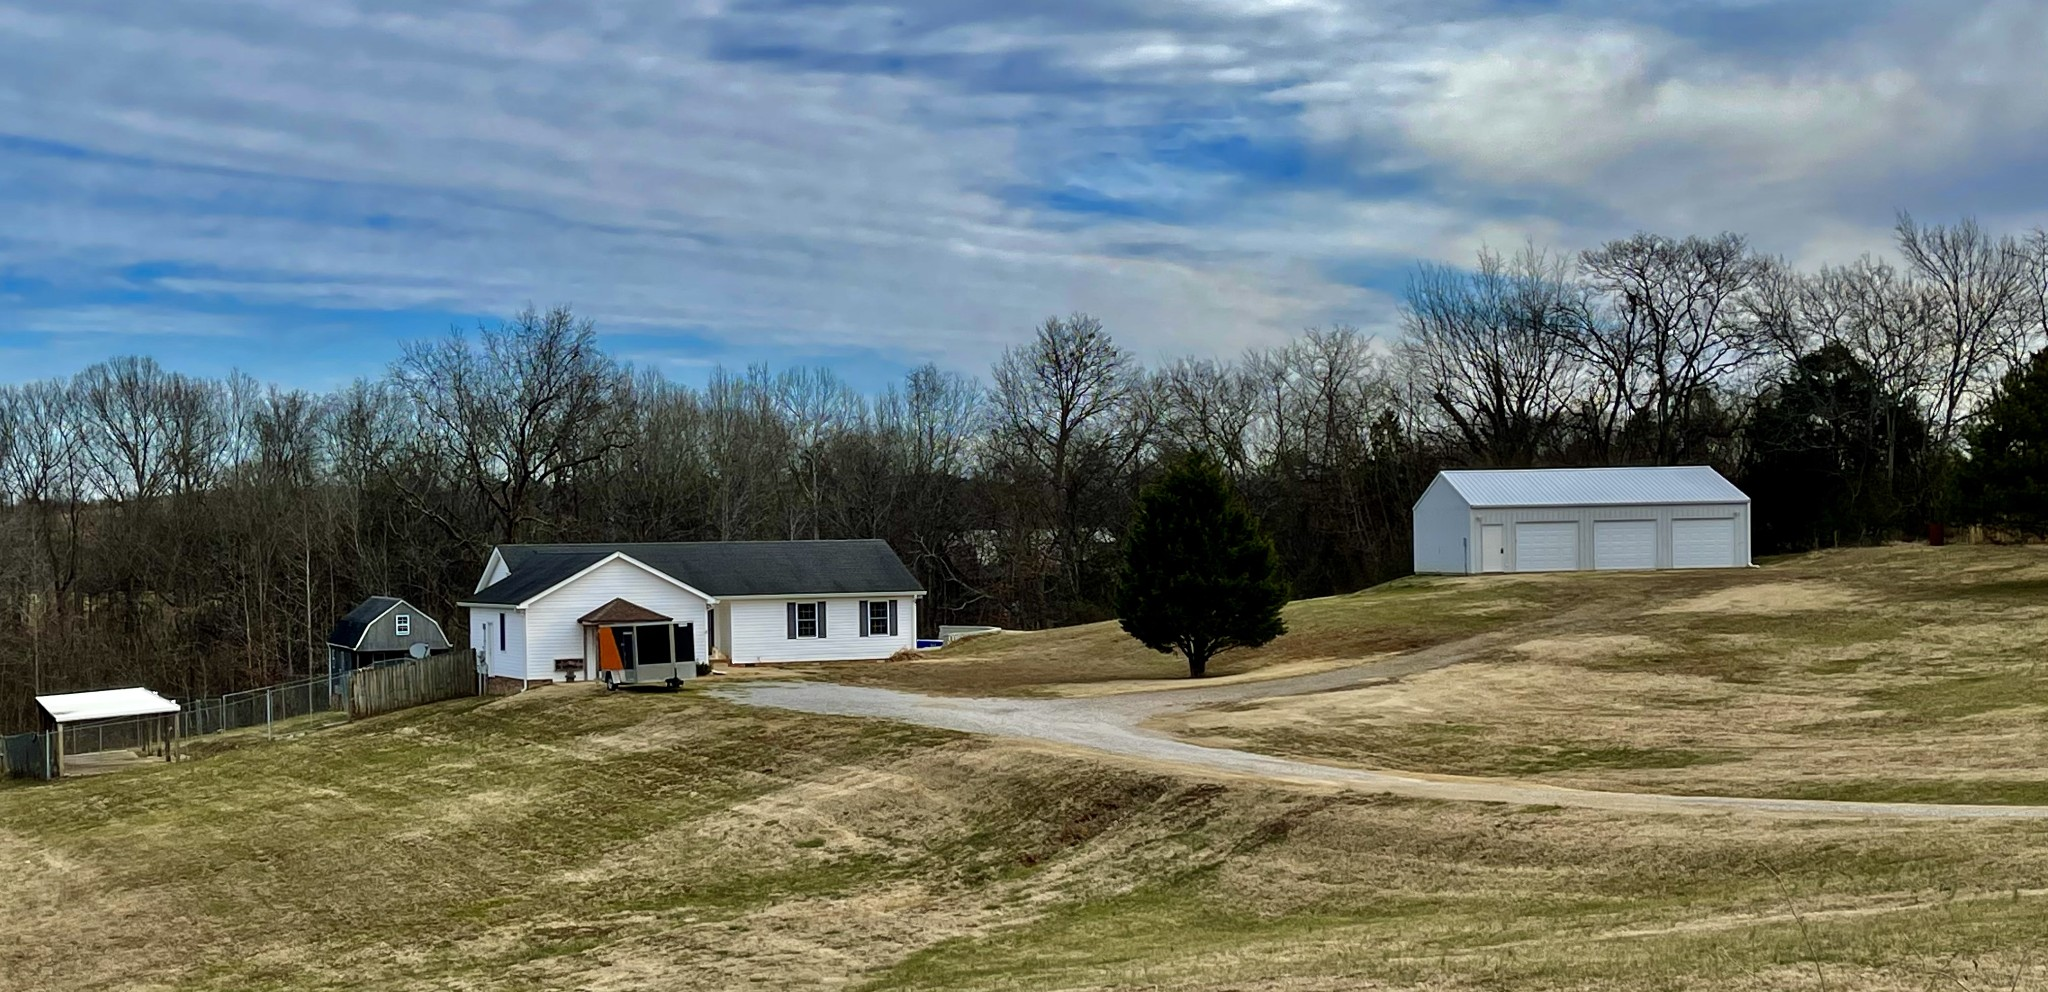 1142 Cumberland City Rd Property Photo - Cumberland City, TN real estate listing